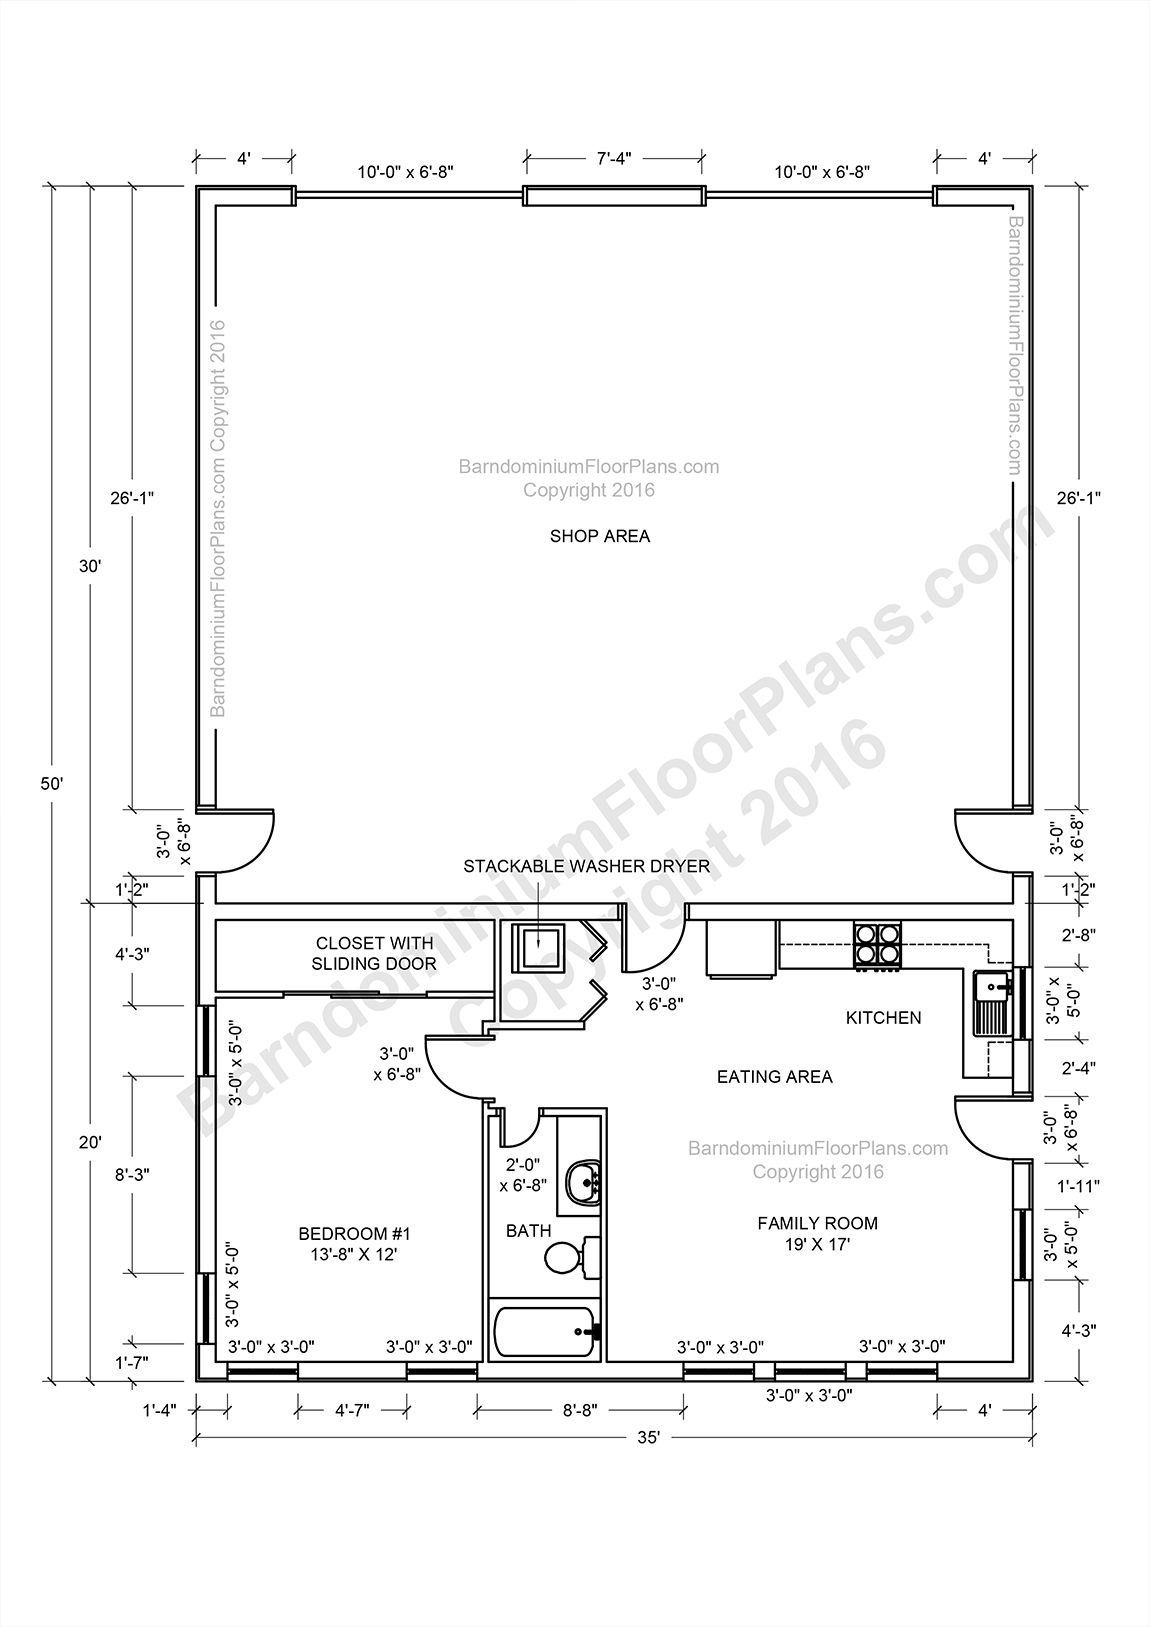 2 Story Pole Barn House Plans Awesome Beast Metal Building Barndominium Floor Plans and Design